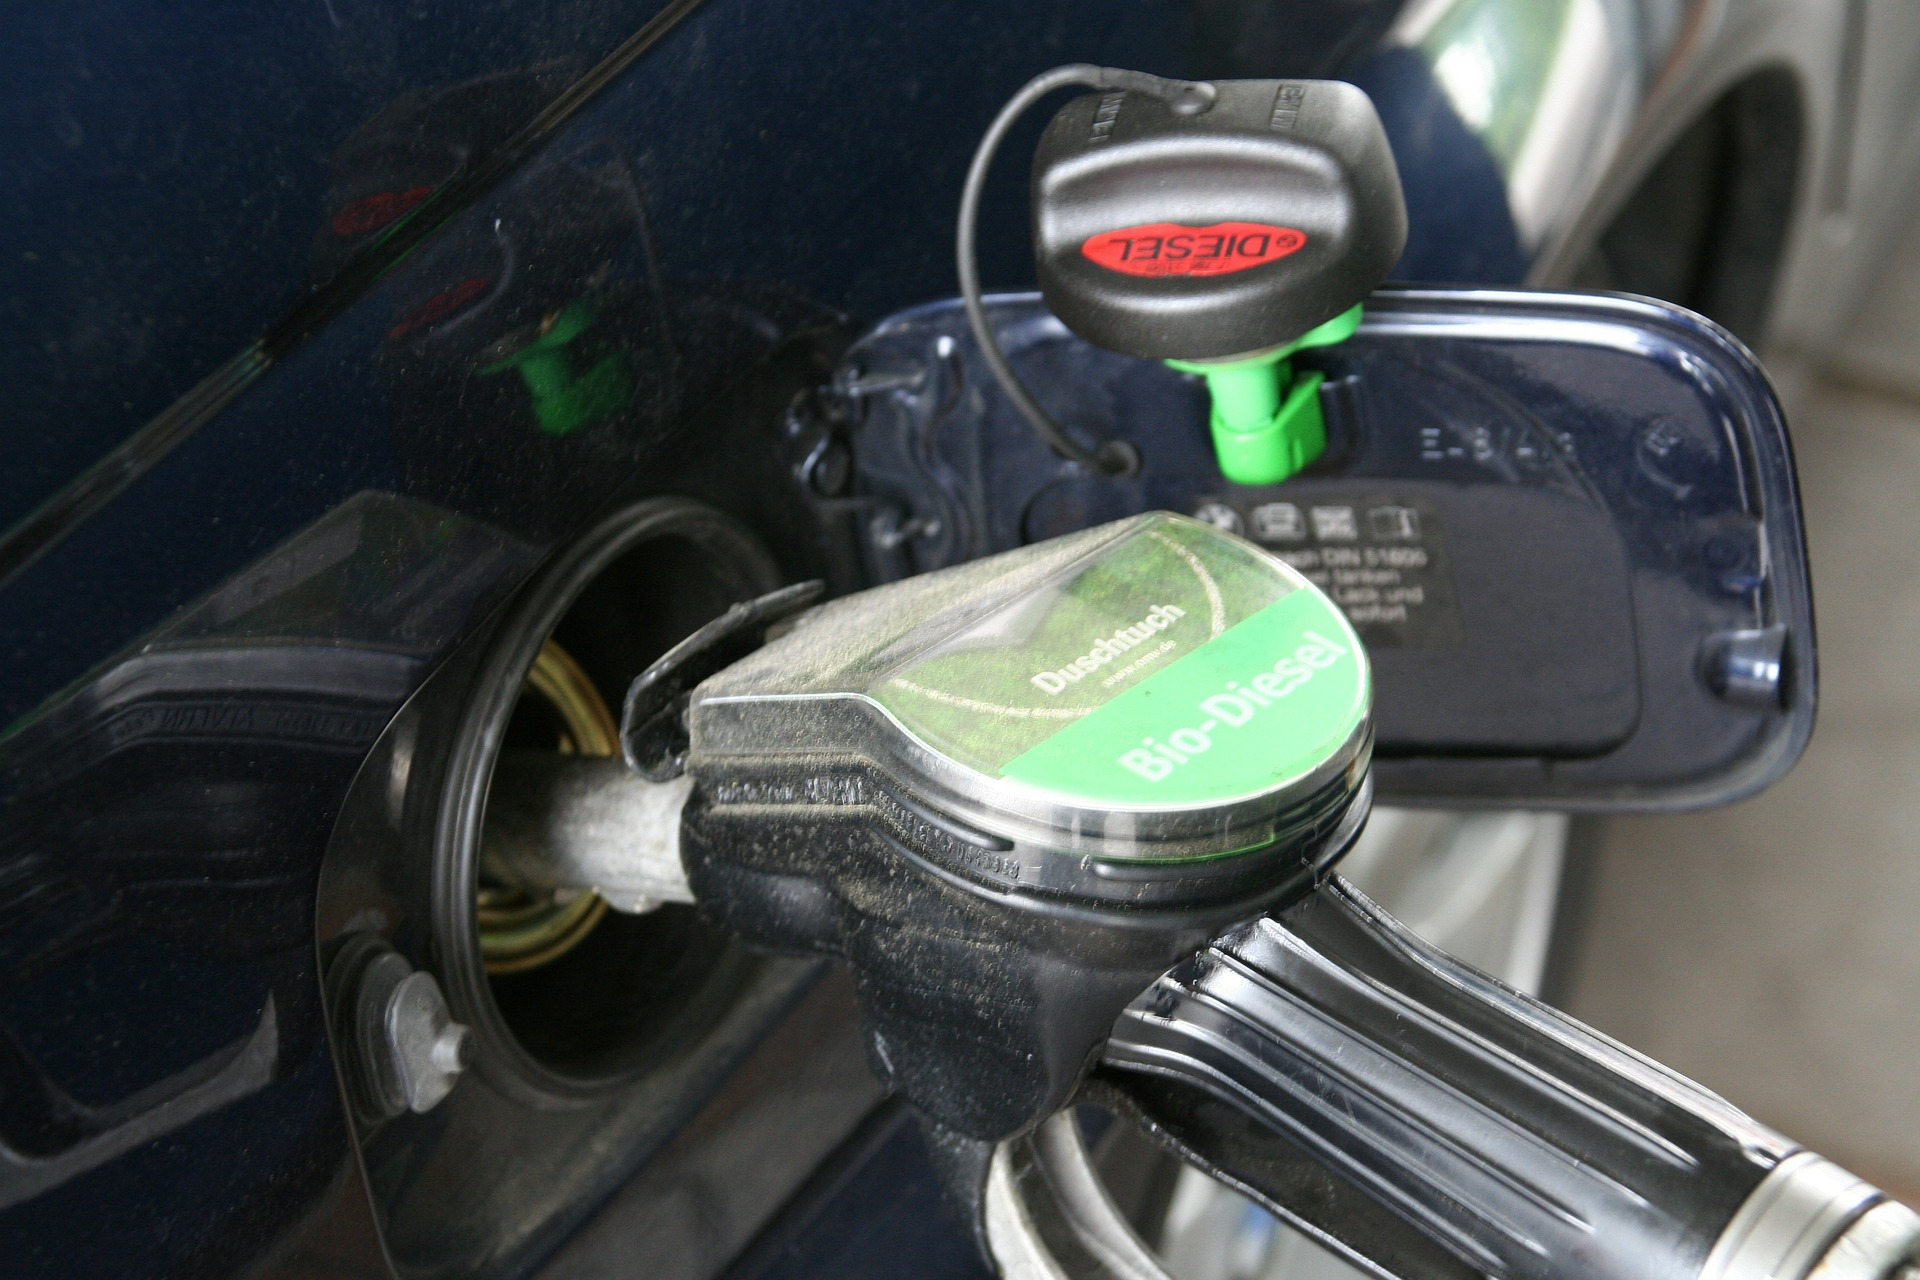 A picture of a car being filled up with fuel